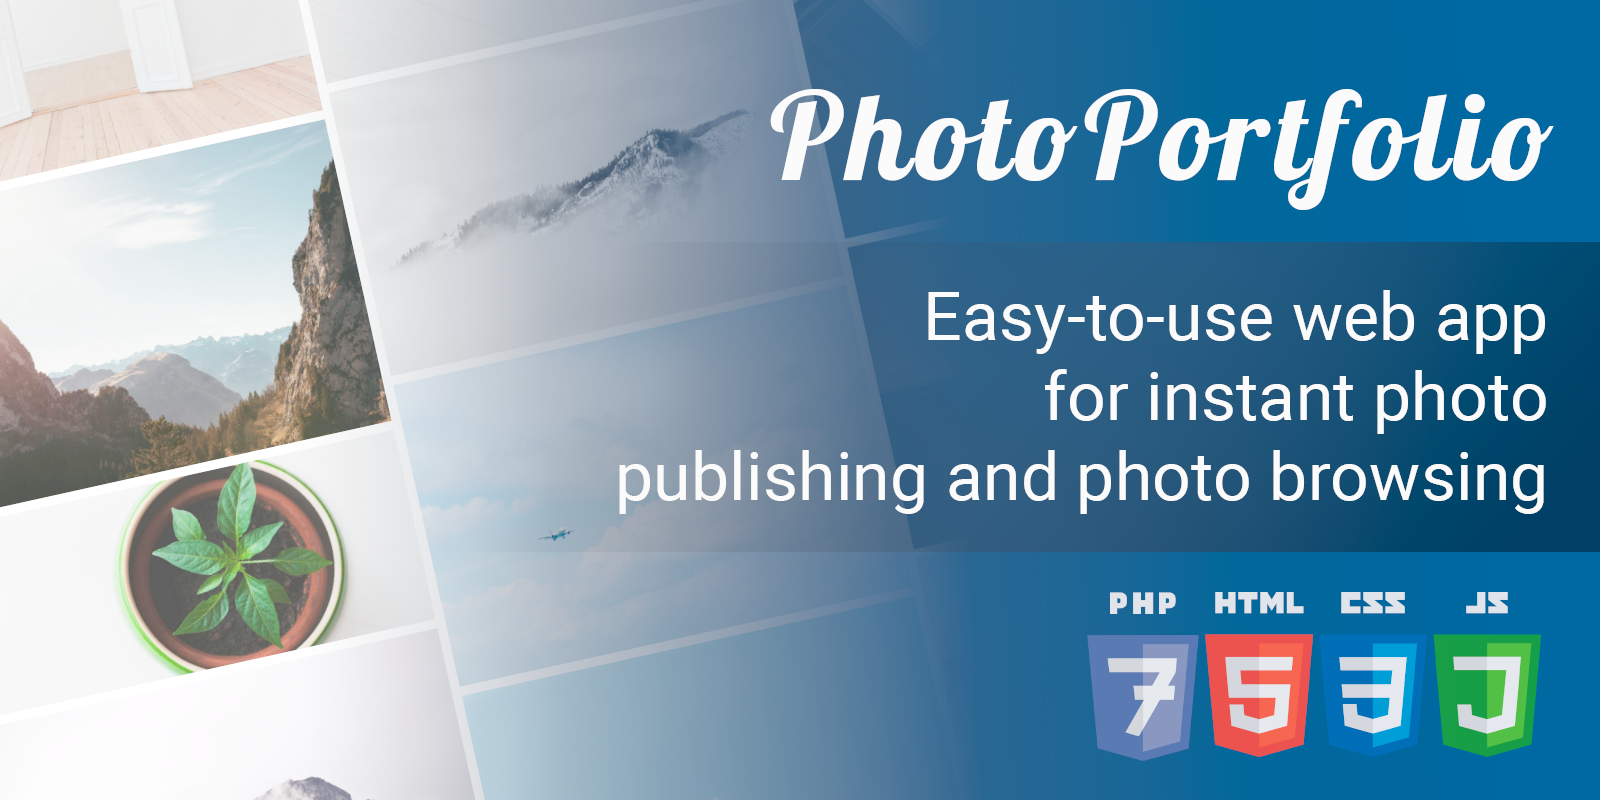 Easy-to-use web app for instant image publishing and image browsing